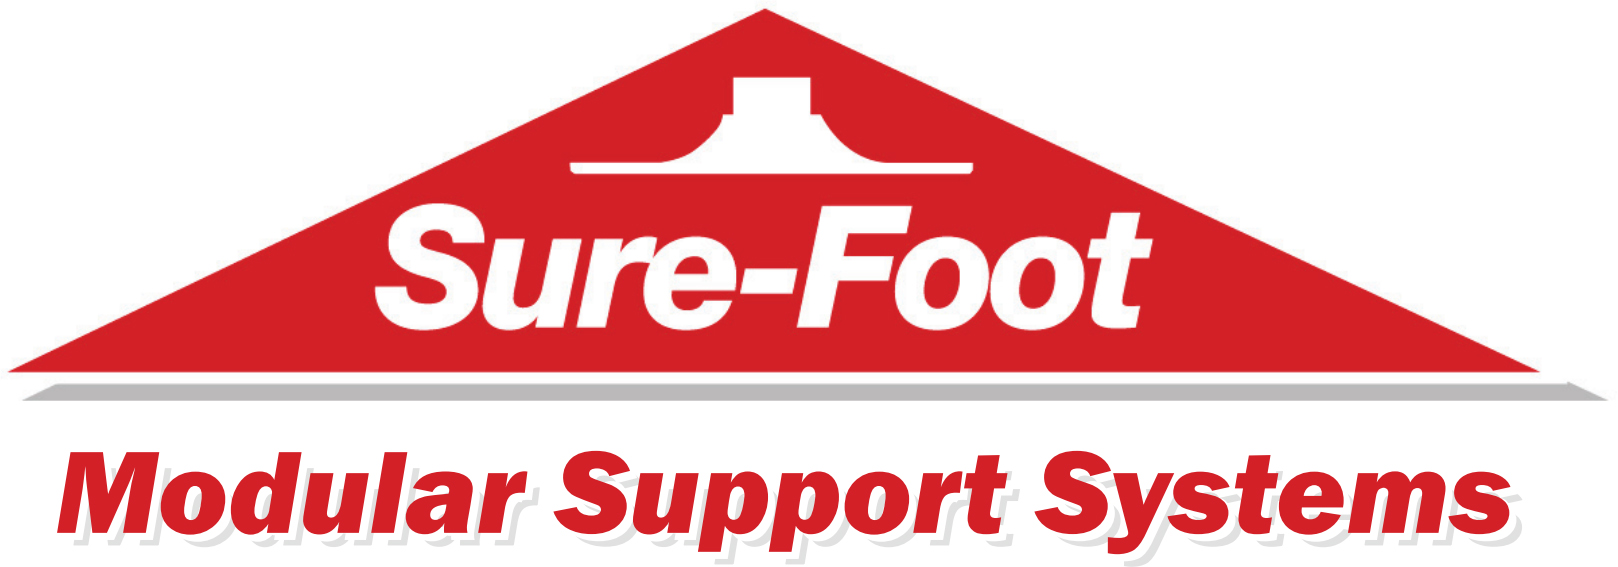 Sure-Foot Modular Support Systems